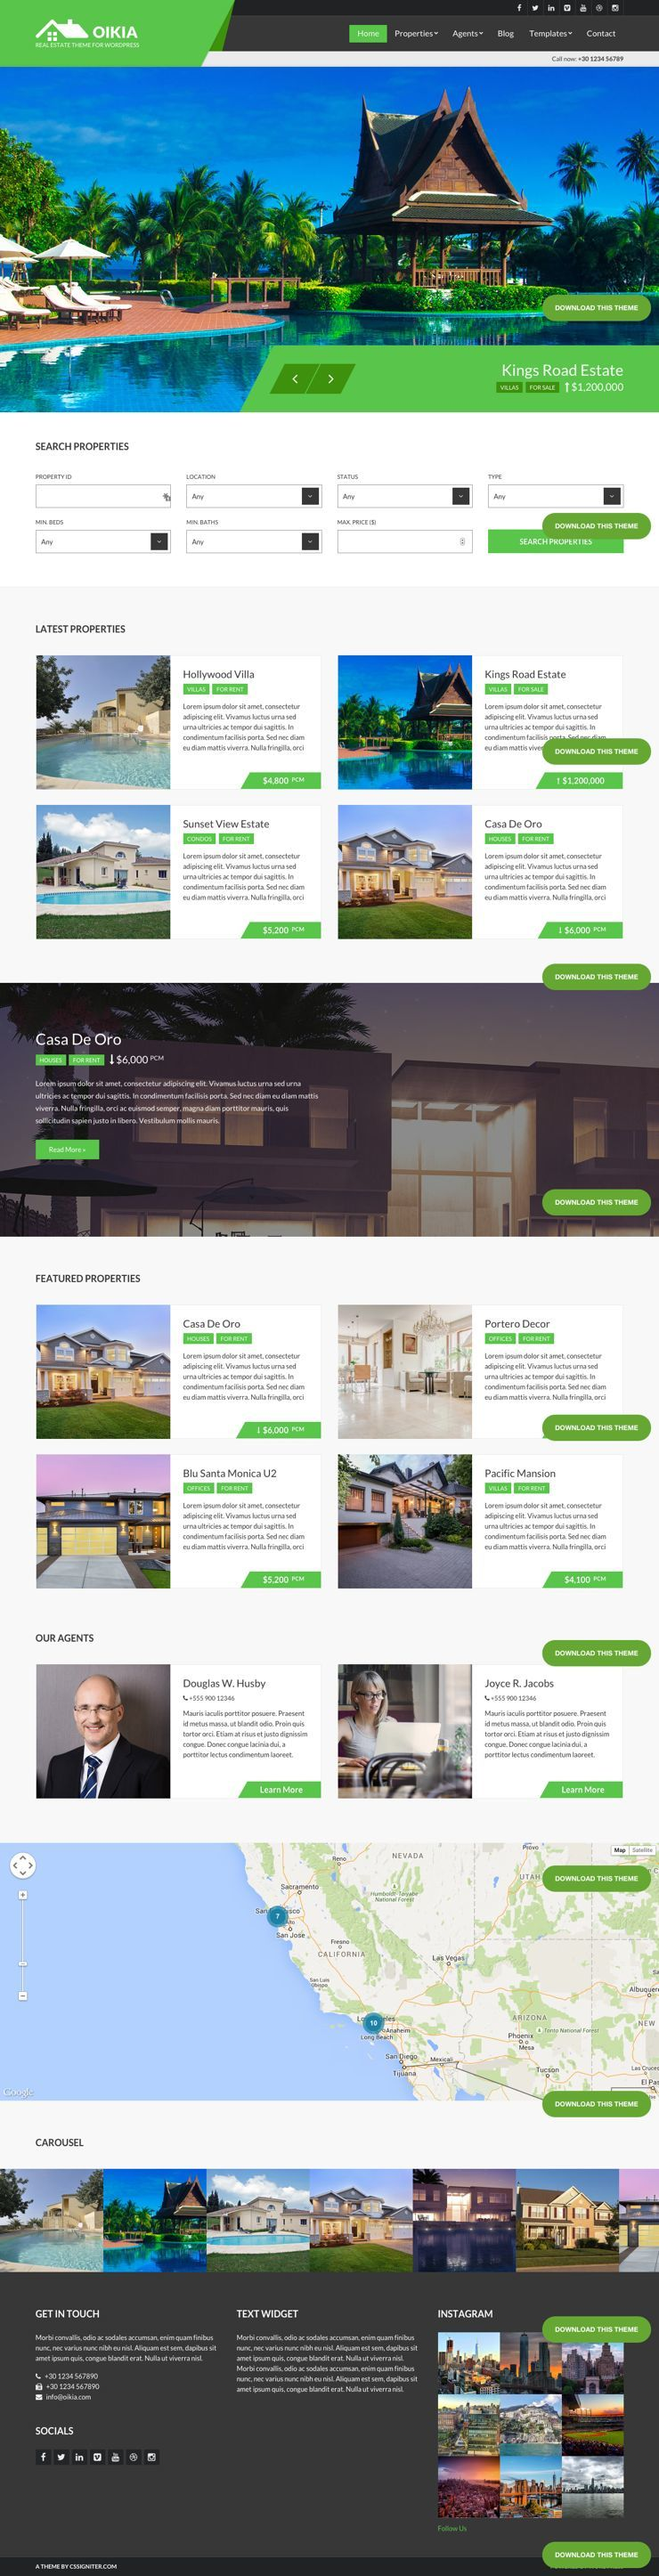 Oikia WordPress Property Listing Theme